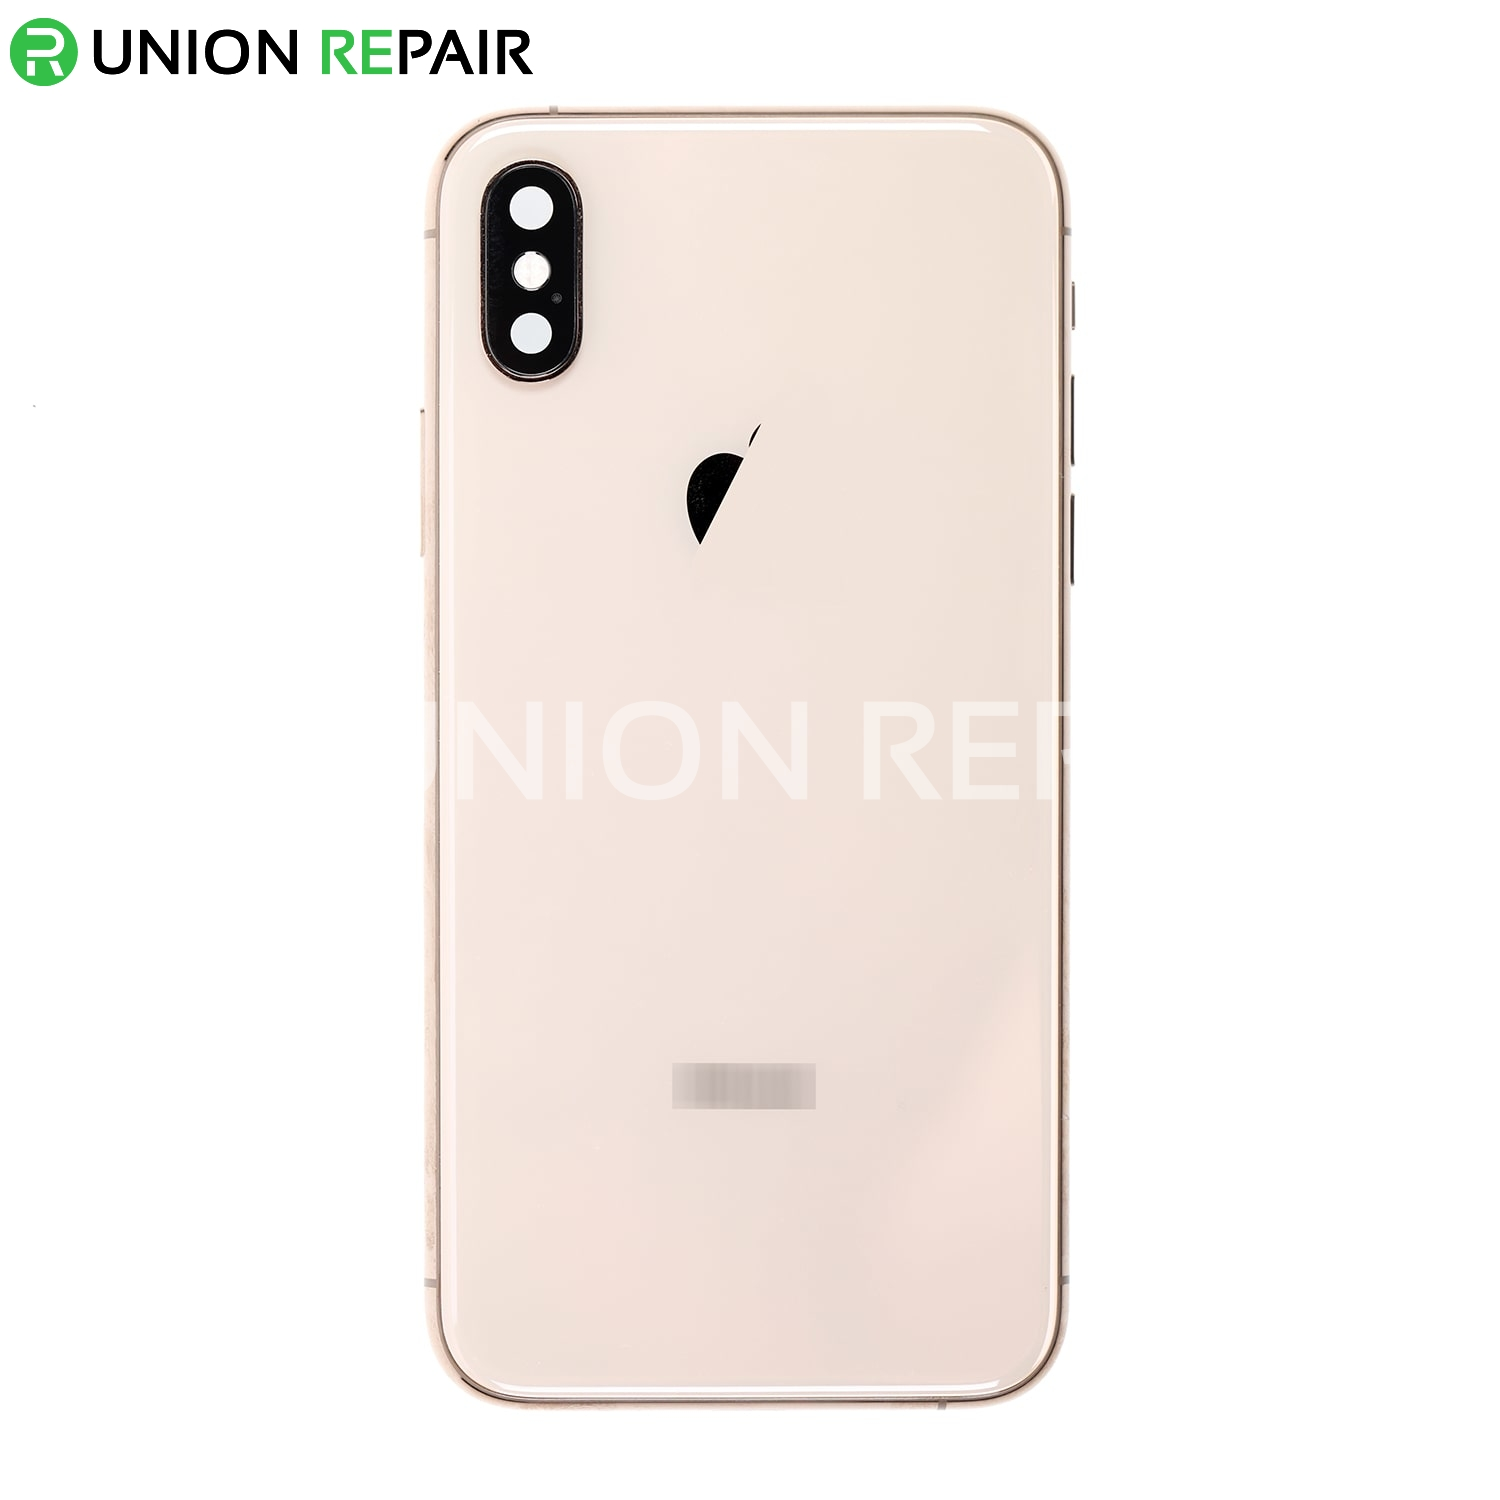 Replacement for iPhone Xs Back Cover Full Assembly - Gold